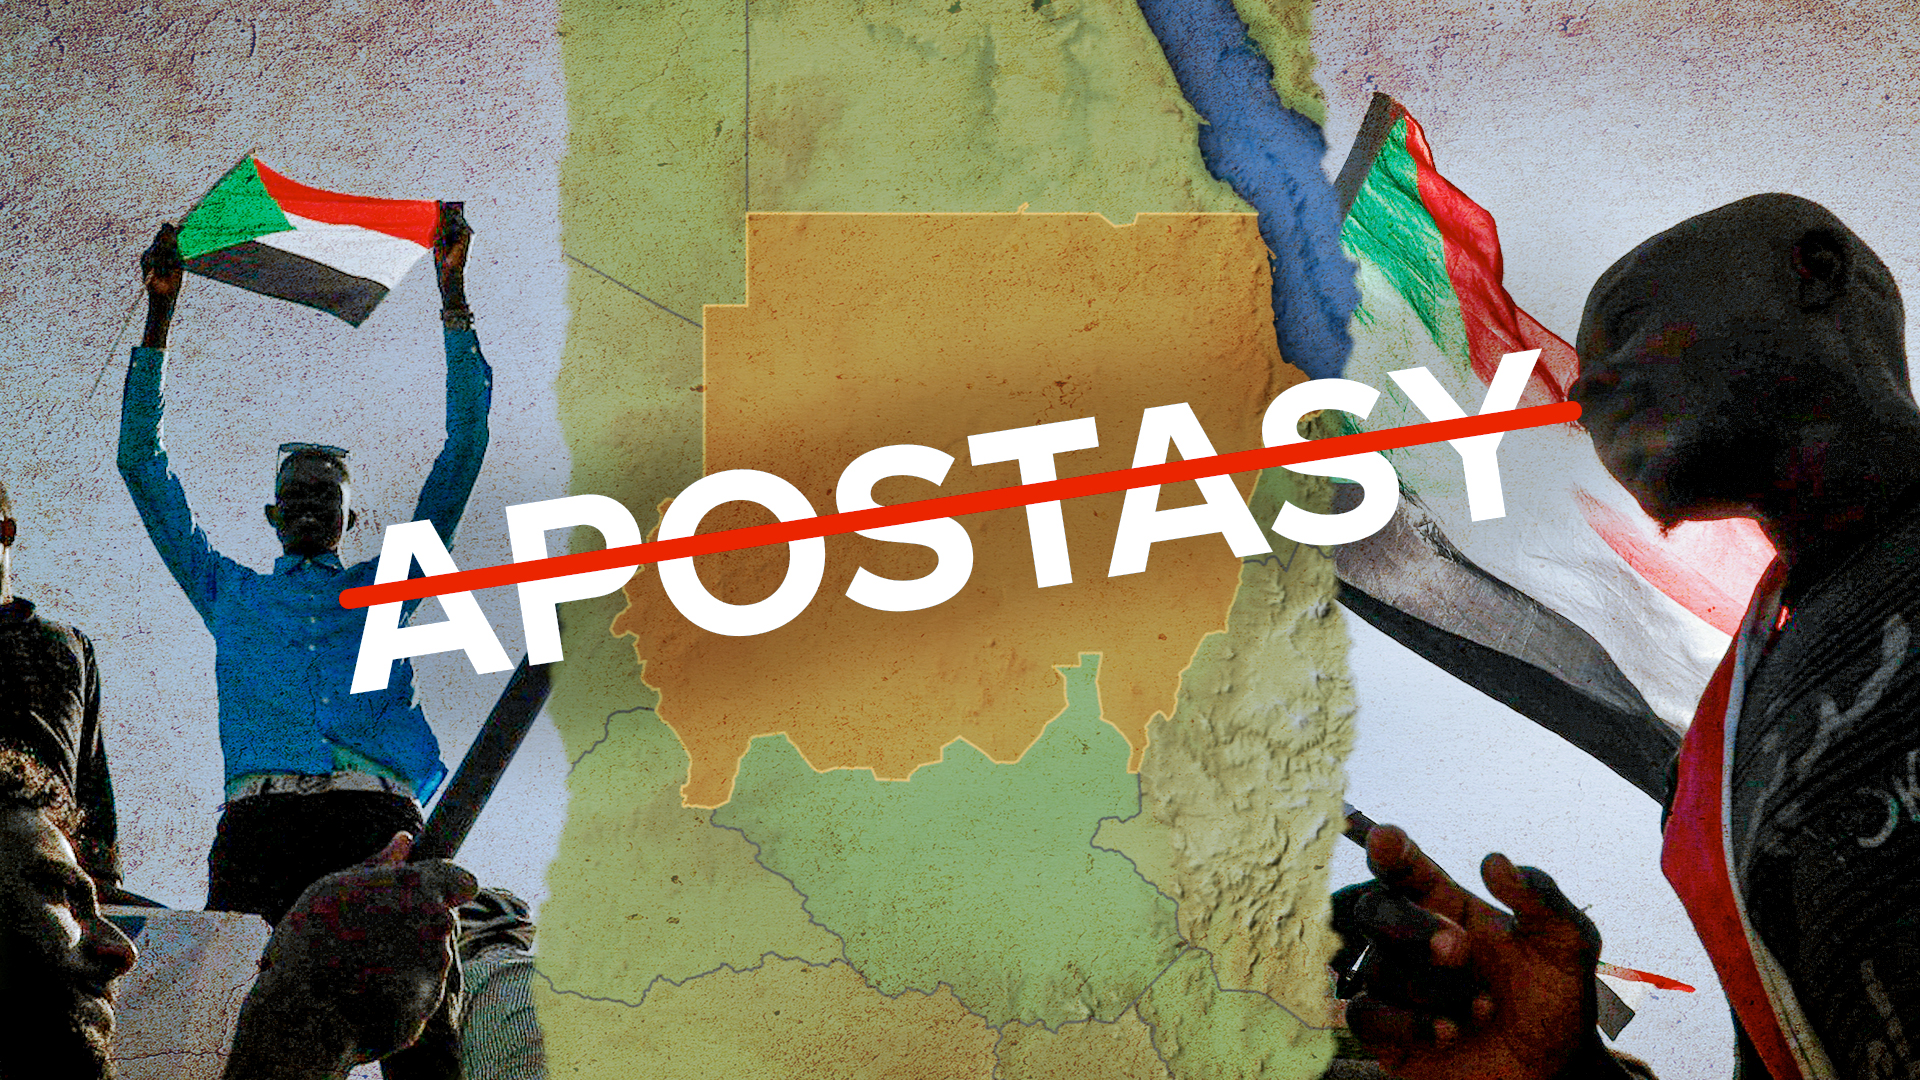 Dawn of a New Day' for Freedom as Sudan Scraps Controversial Islamic Apostasy Law | CBN News